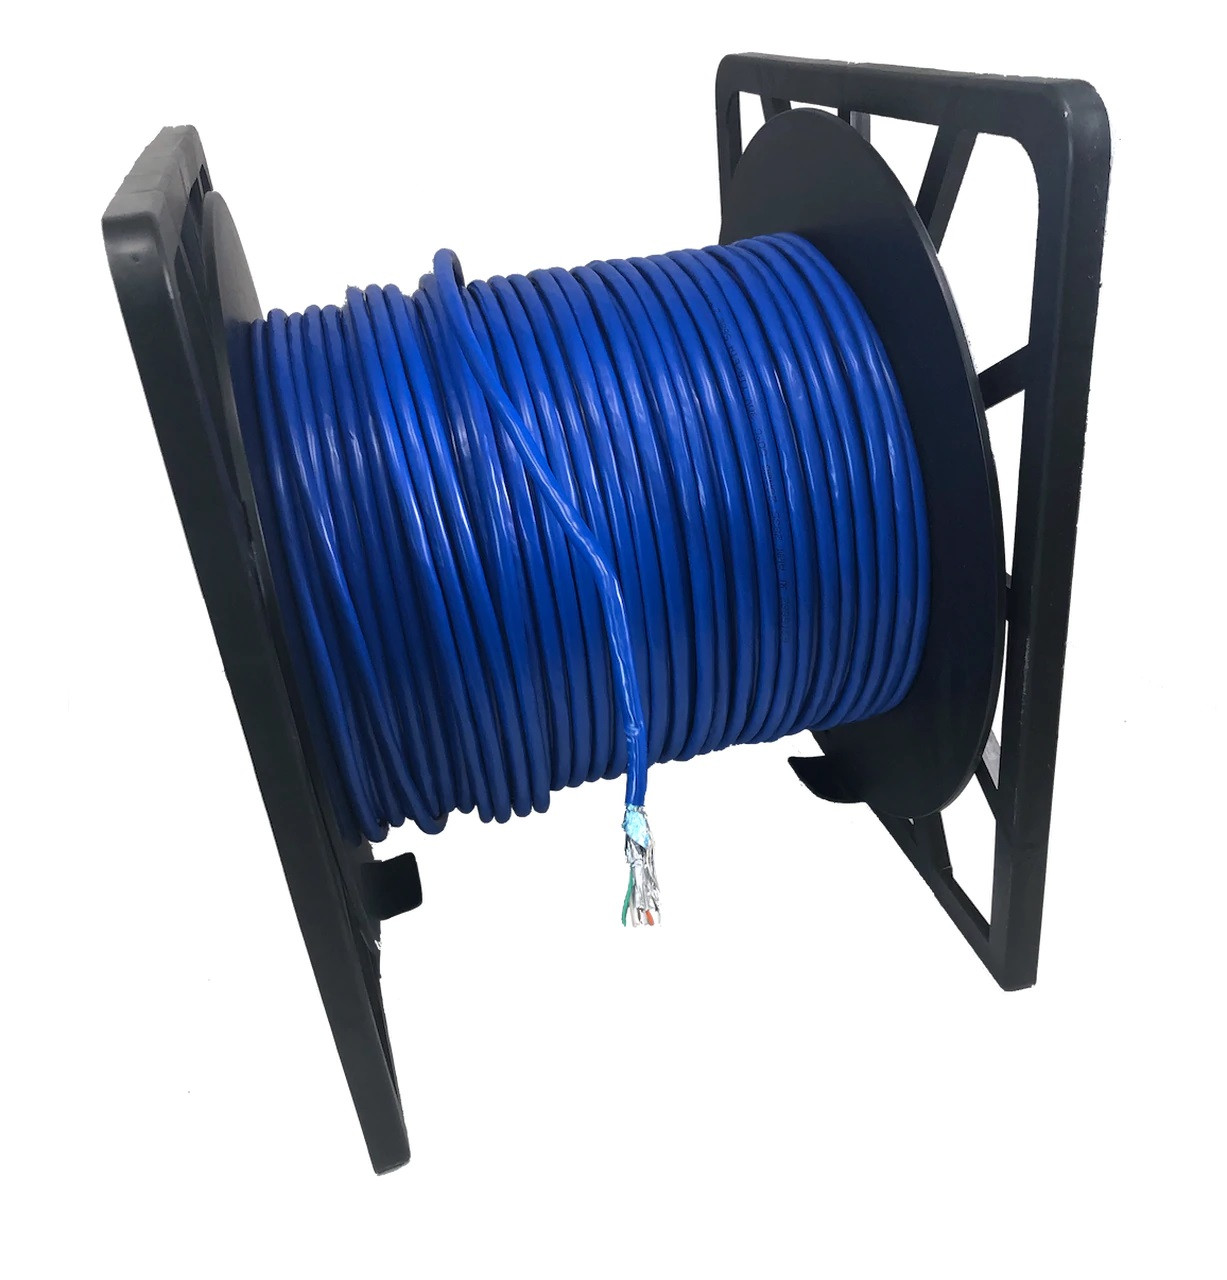 500 Feet Cat6A Stranded-Double Shielded (STP) Bulk Ethernet (26AWG) Cable (Blue) with 20 cat6A/7 Connectors